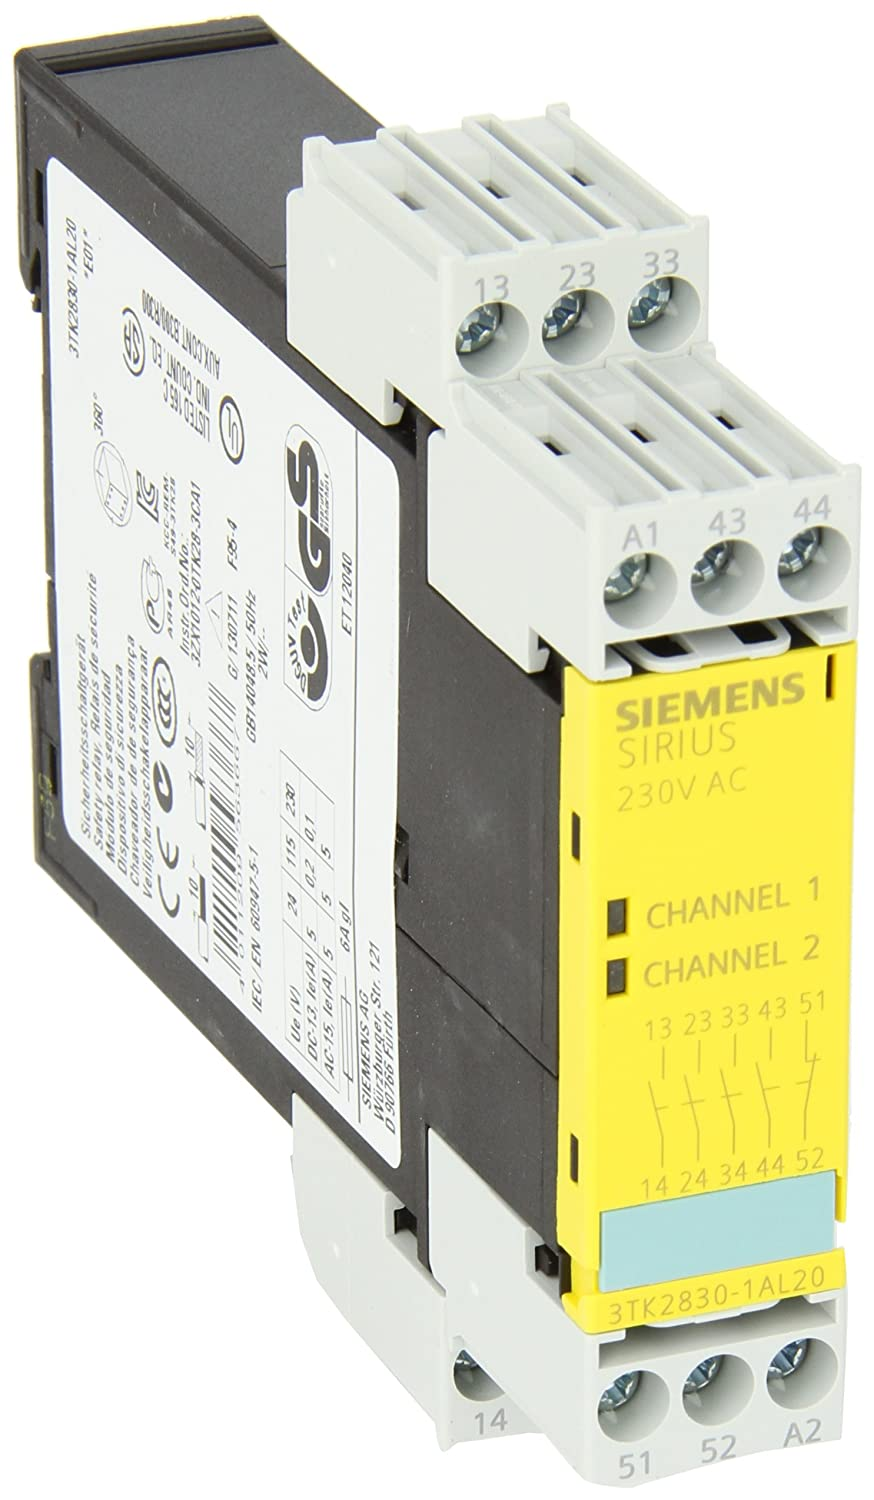 230VAC Rated Voltage Siemens 3TK28 30-1AL20 Safety Relay Expansion Unit 4 NO Enabling Contacts Screw Terminals 22.5mm Width 3TK28301AL20